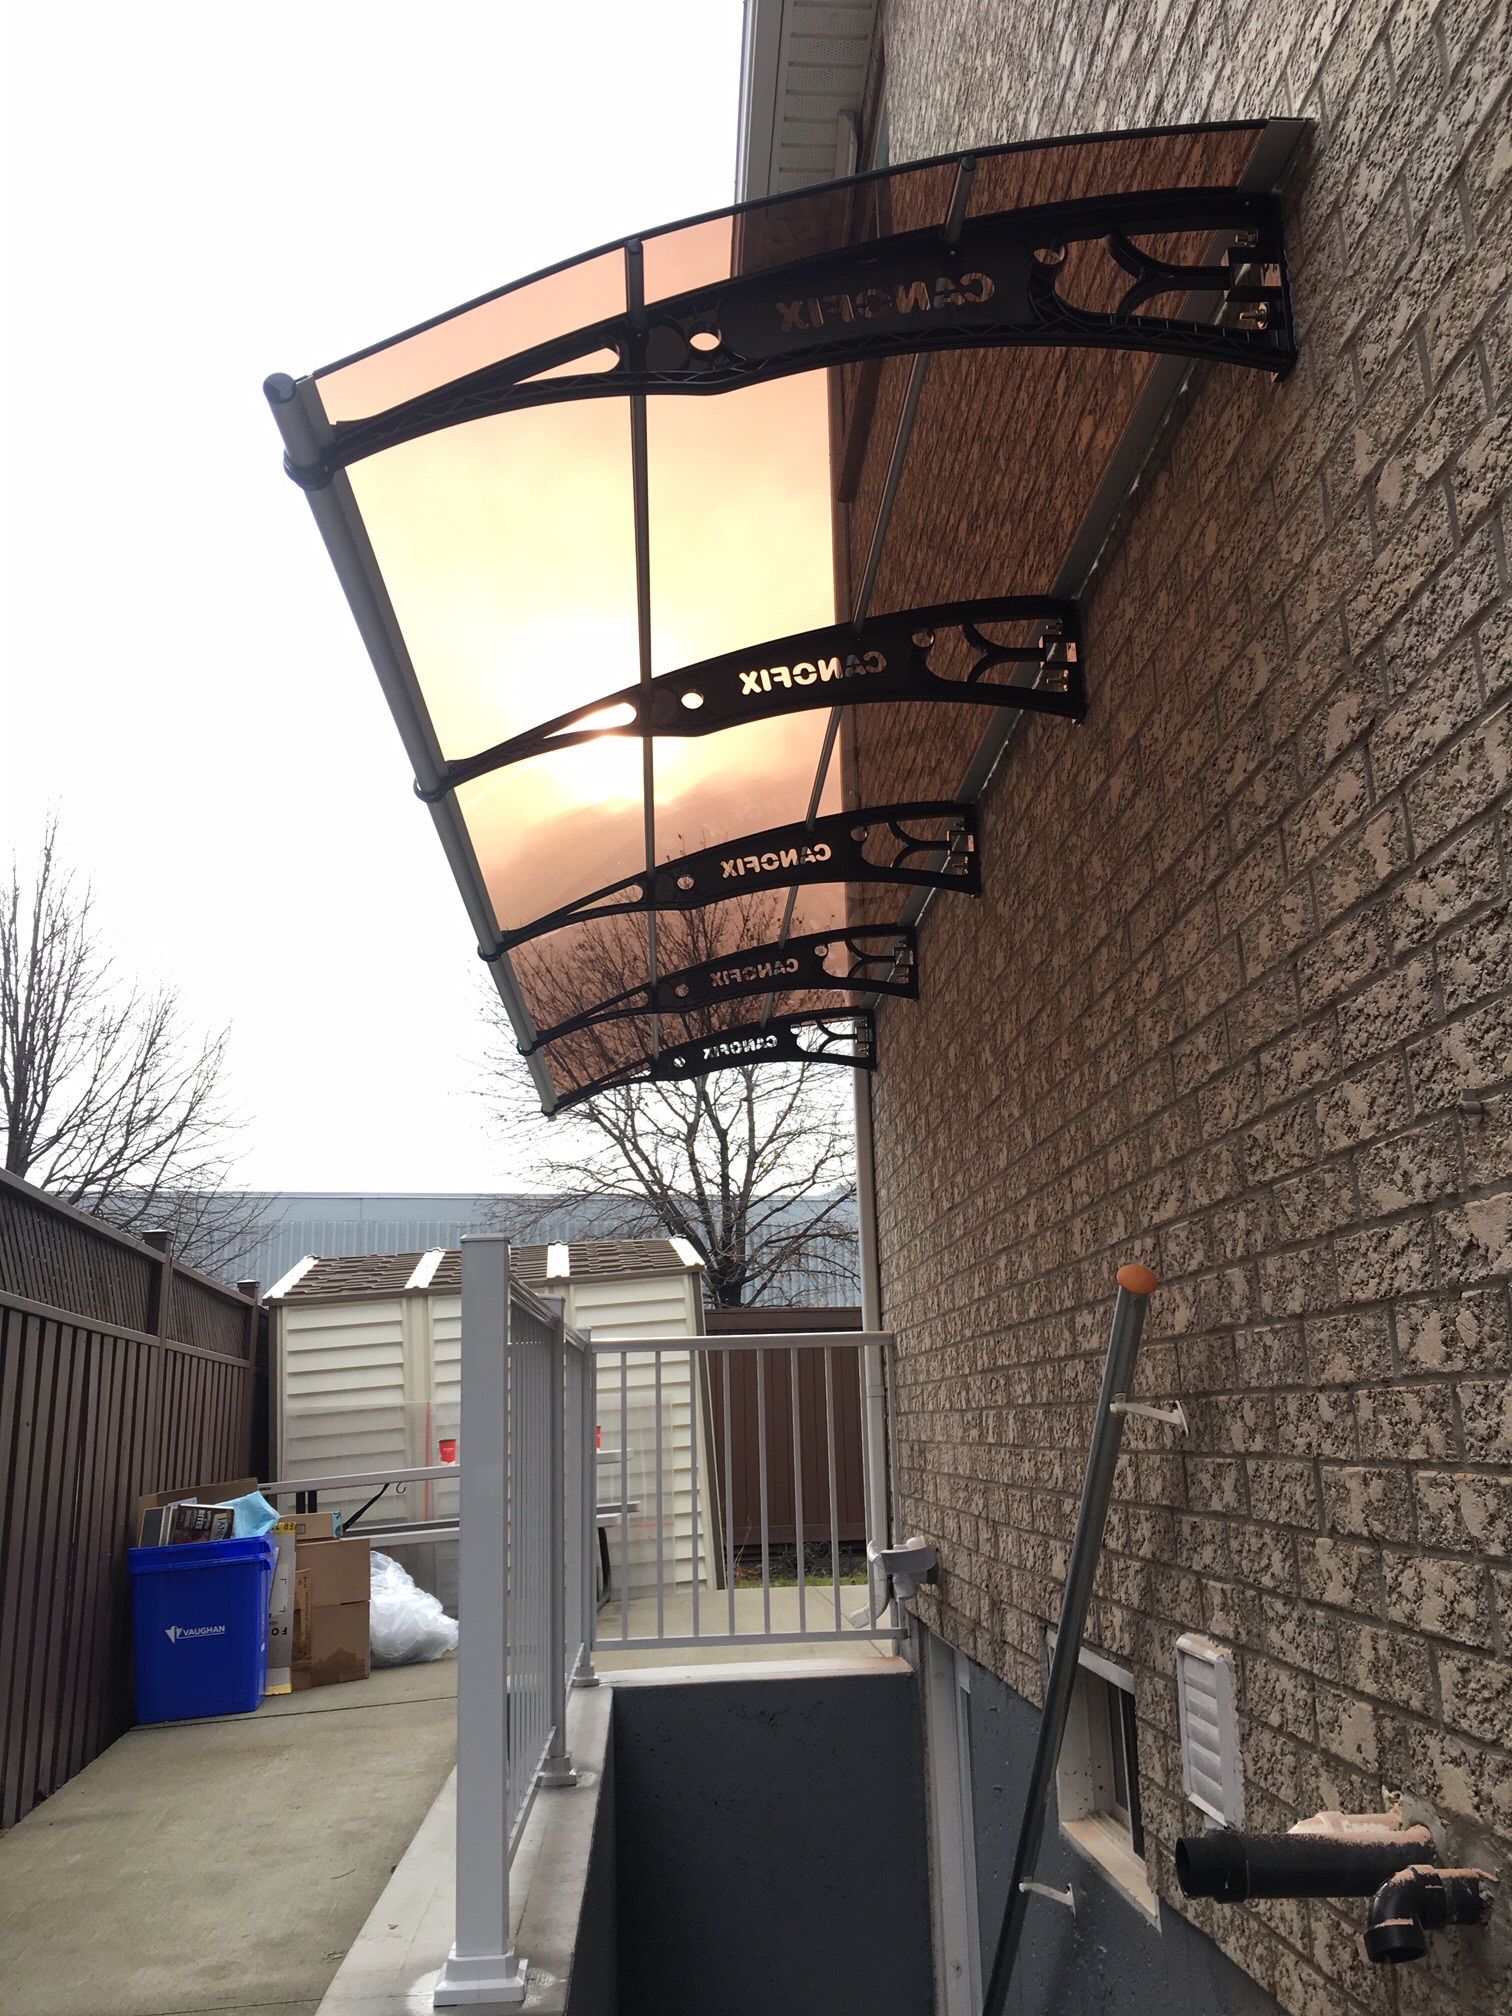 Single Panel Awning System With Images Awning Paneling